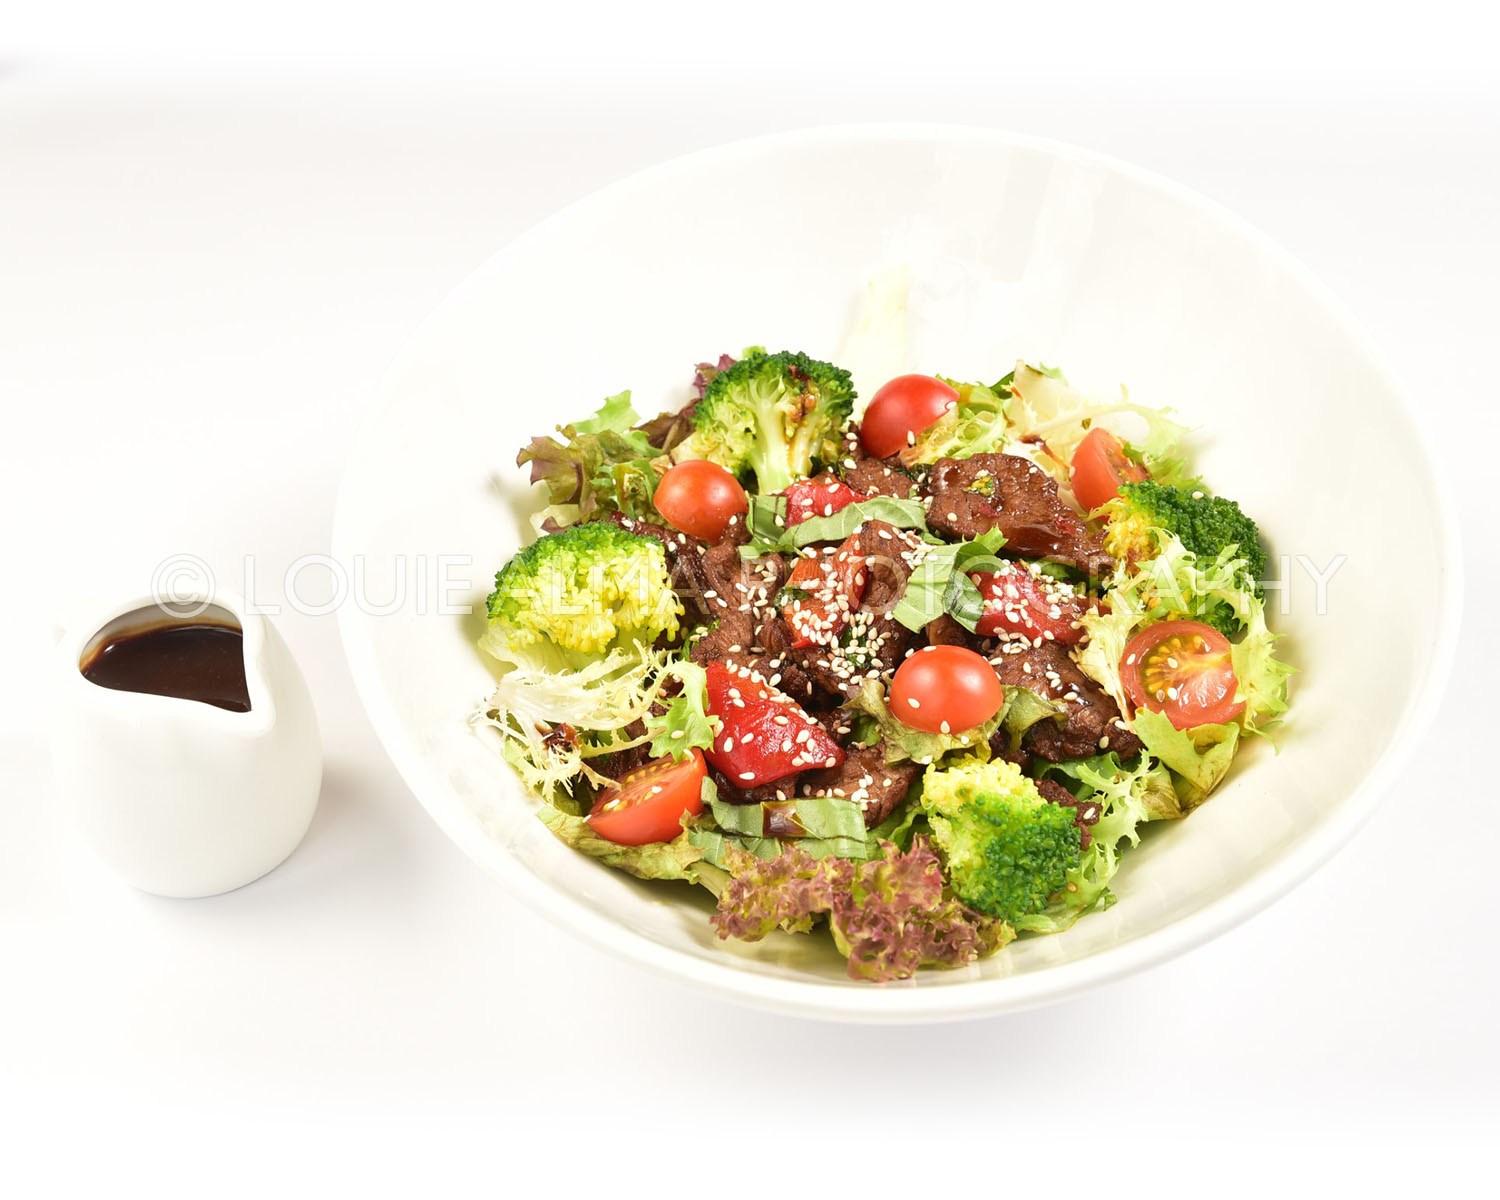 LouieAlmaPhotography_Food_Protein&Carb_ThaiBeefSalad